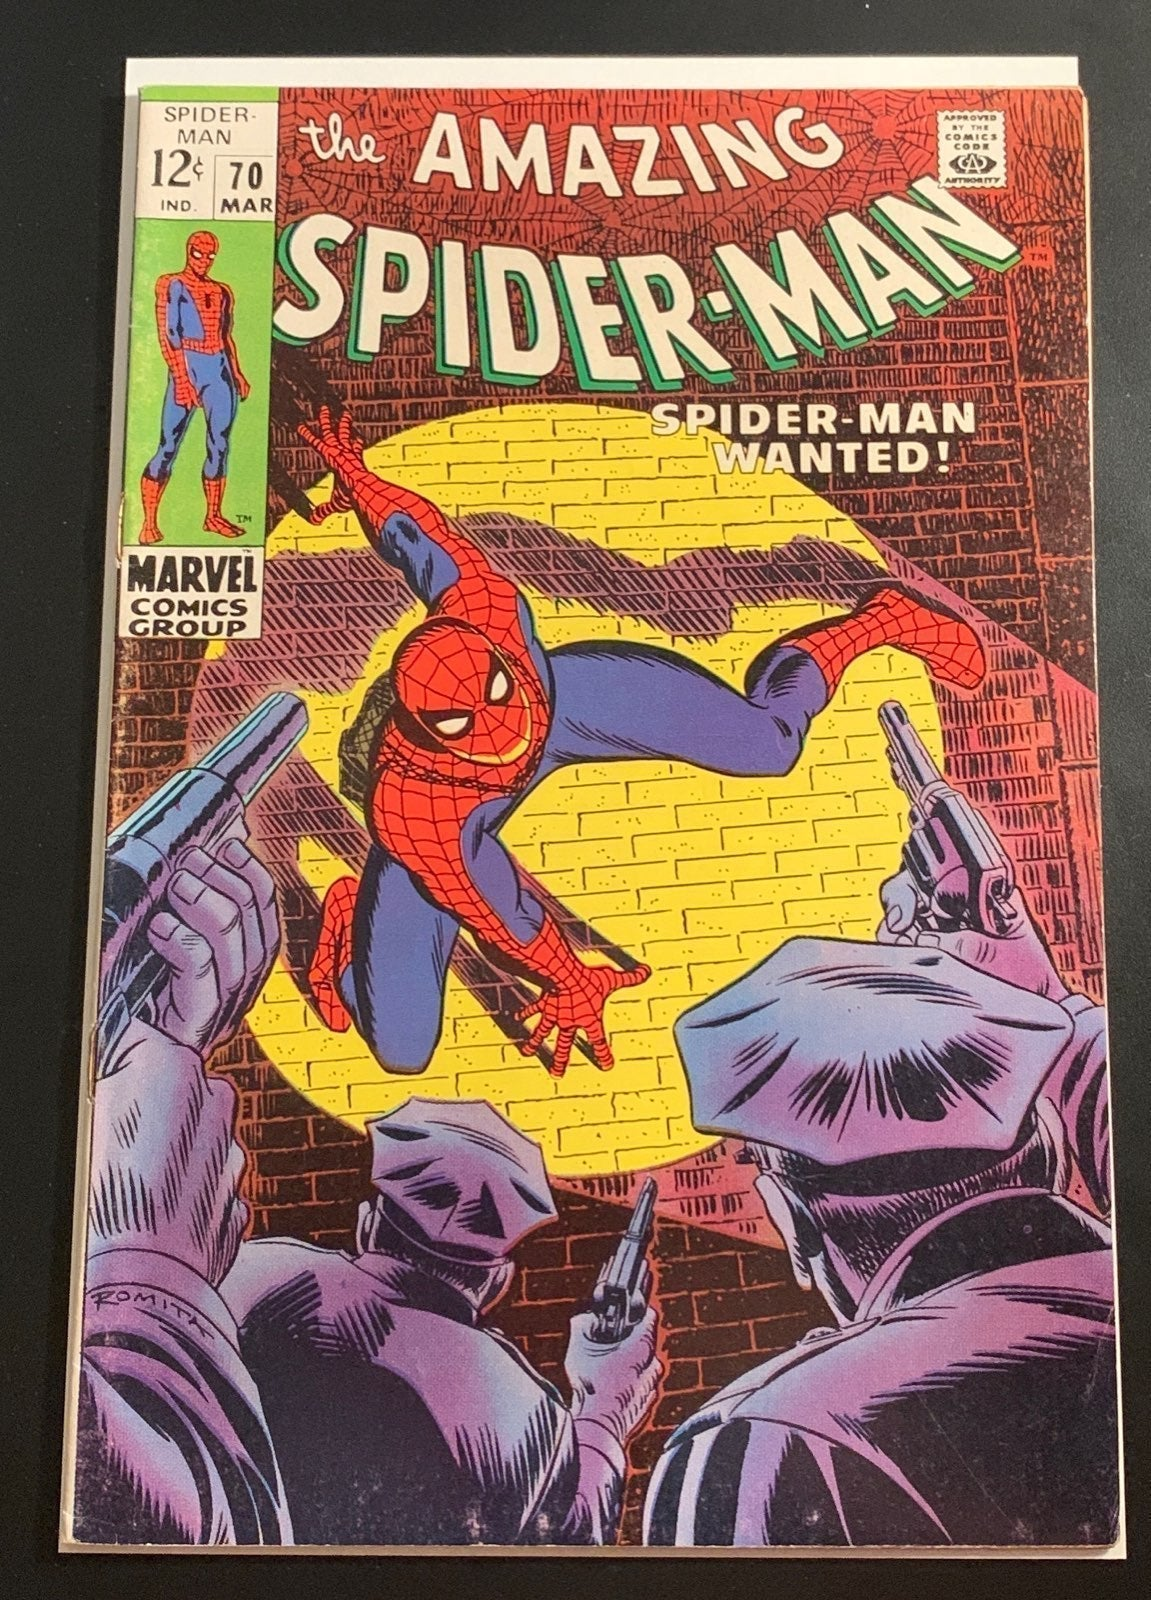 The Amazing Spider-Man Issue 70